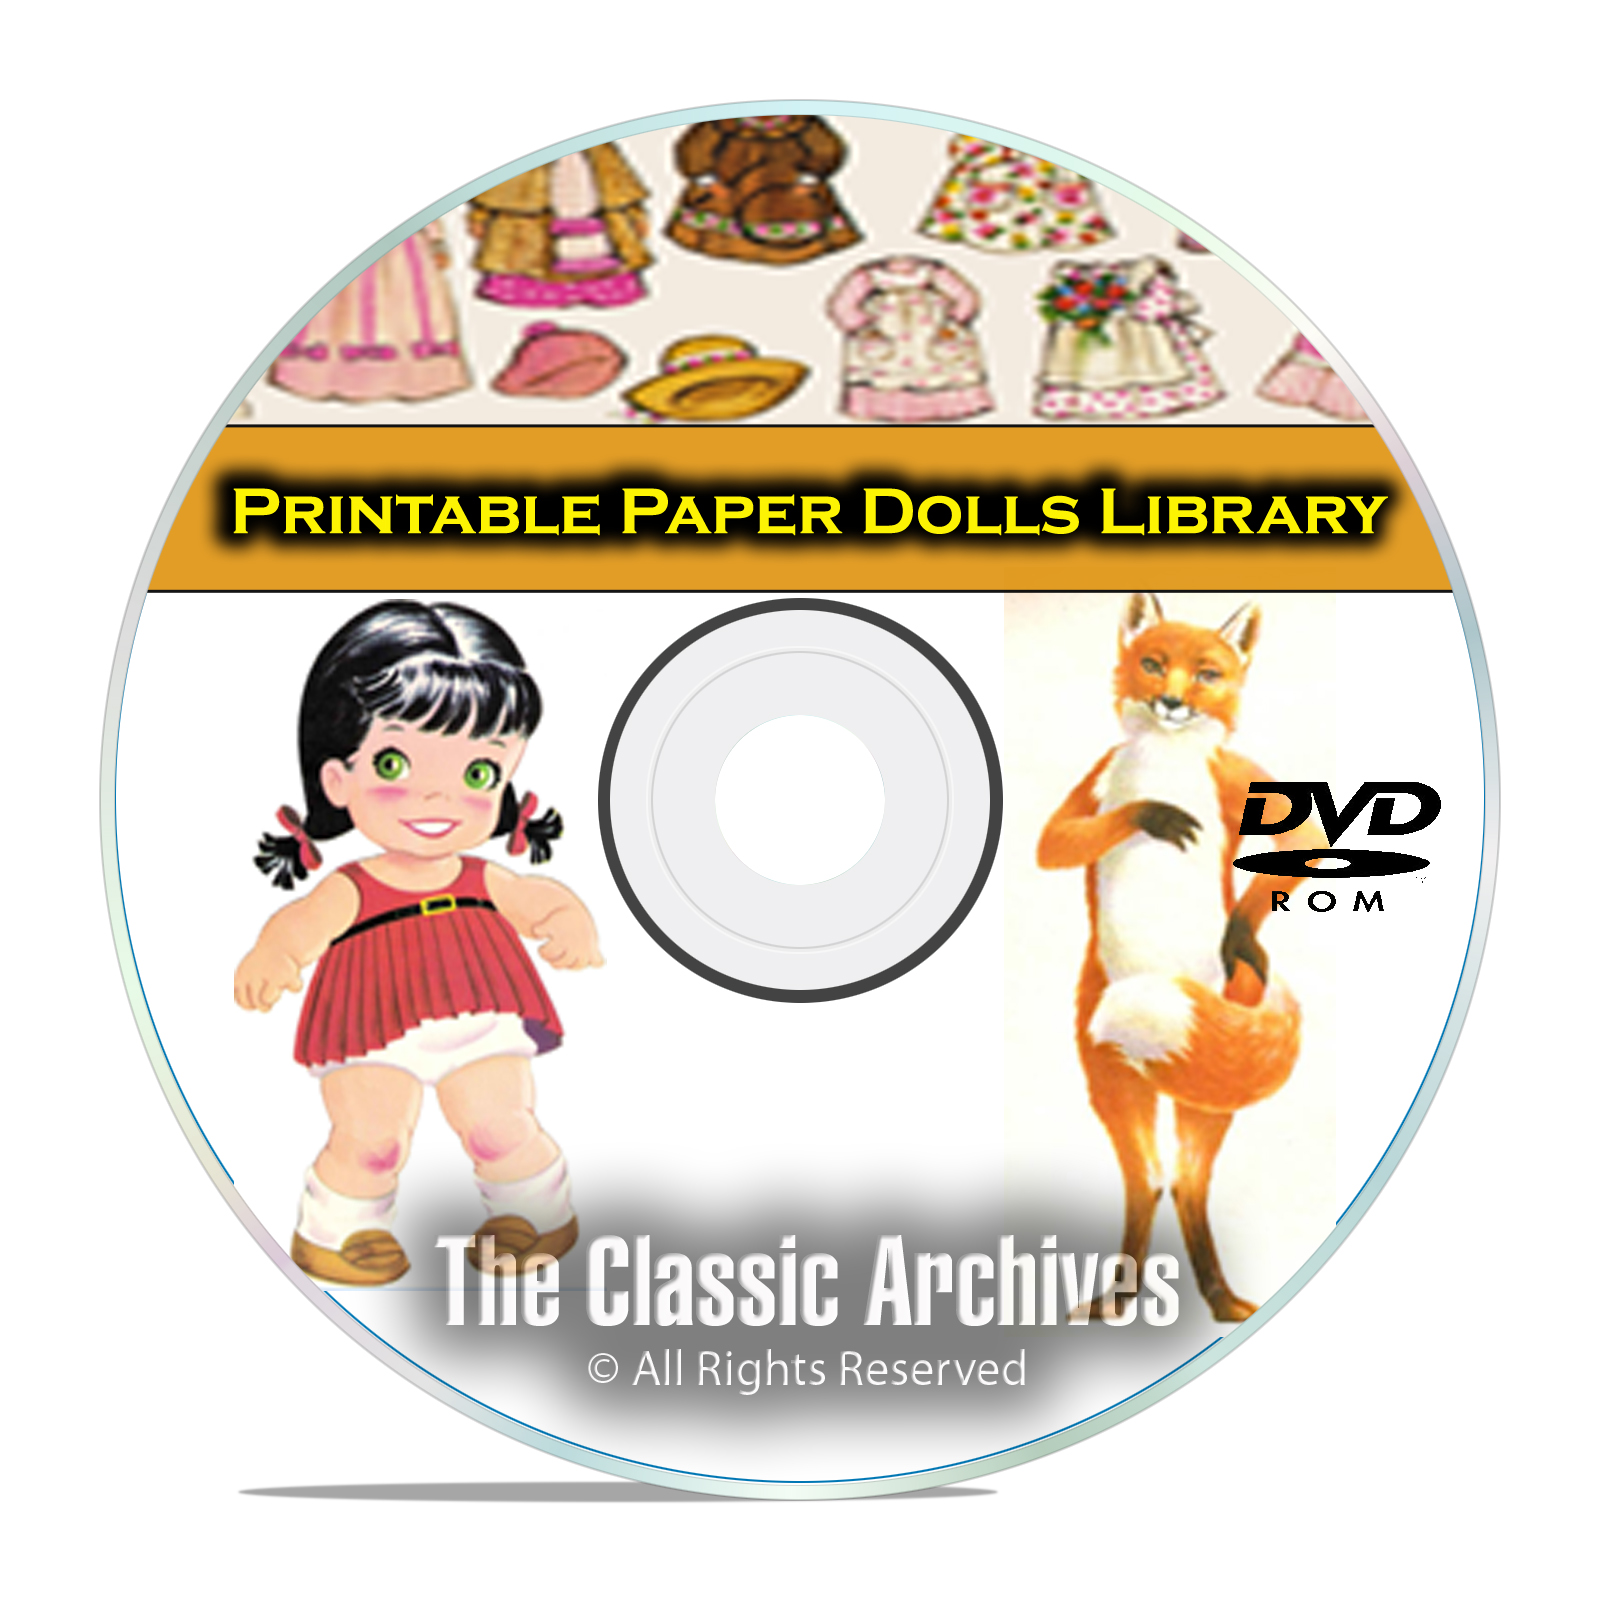 2,000 Plus Printable Paper Dolls Library, McCall Doll, Vintage Baby DVD